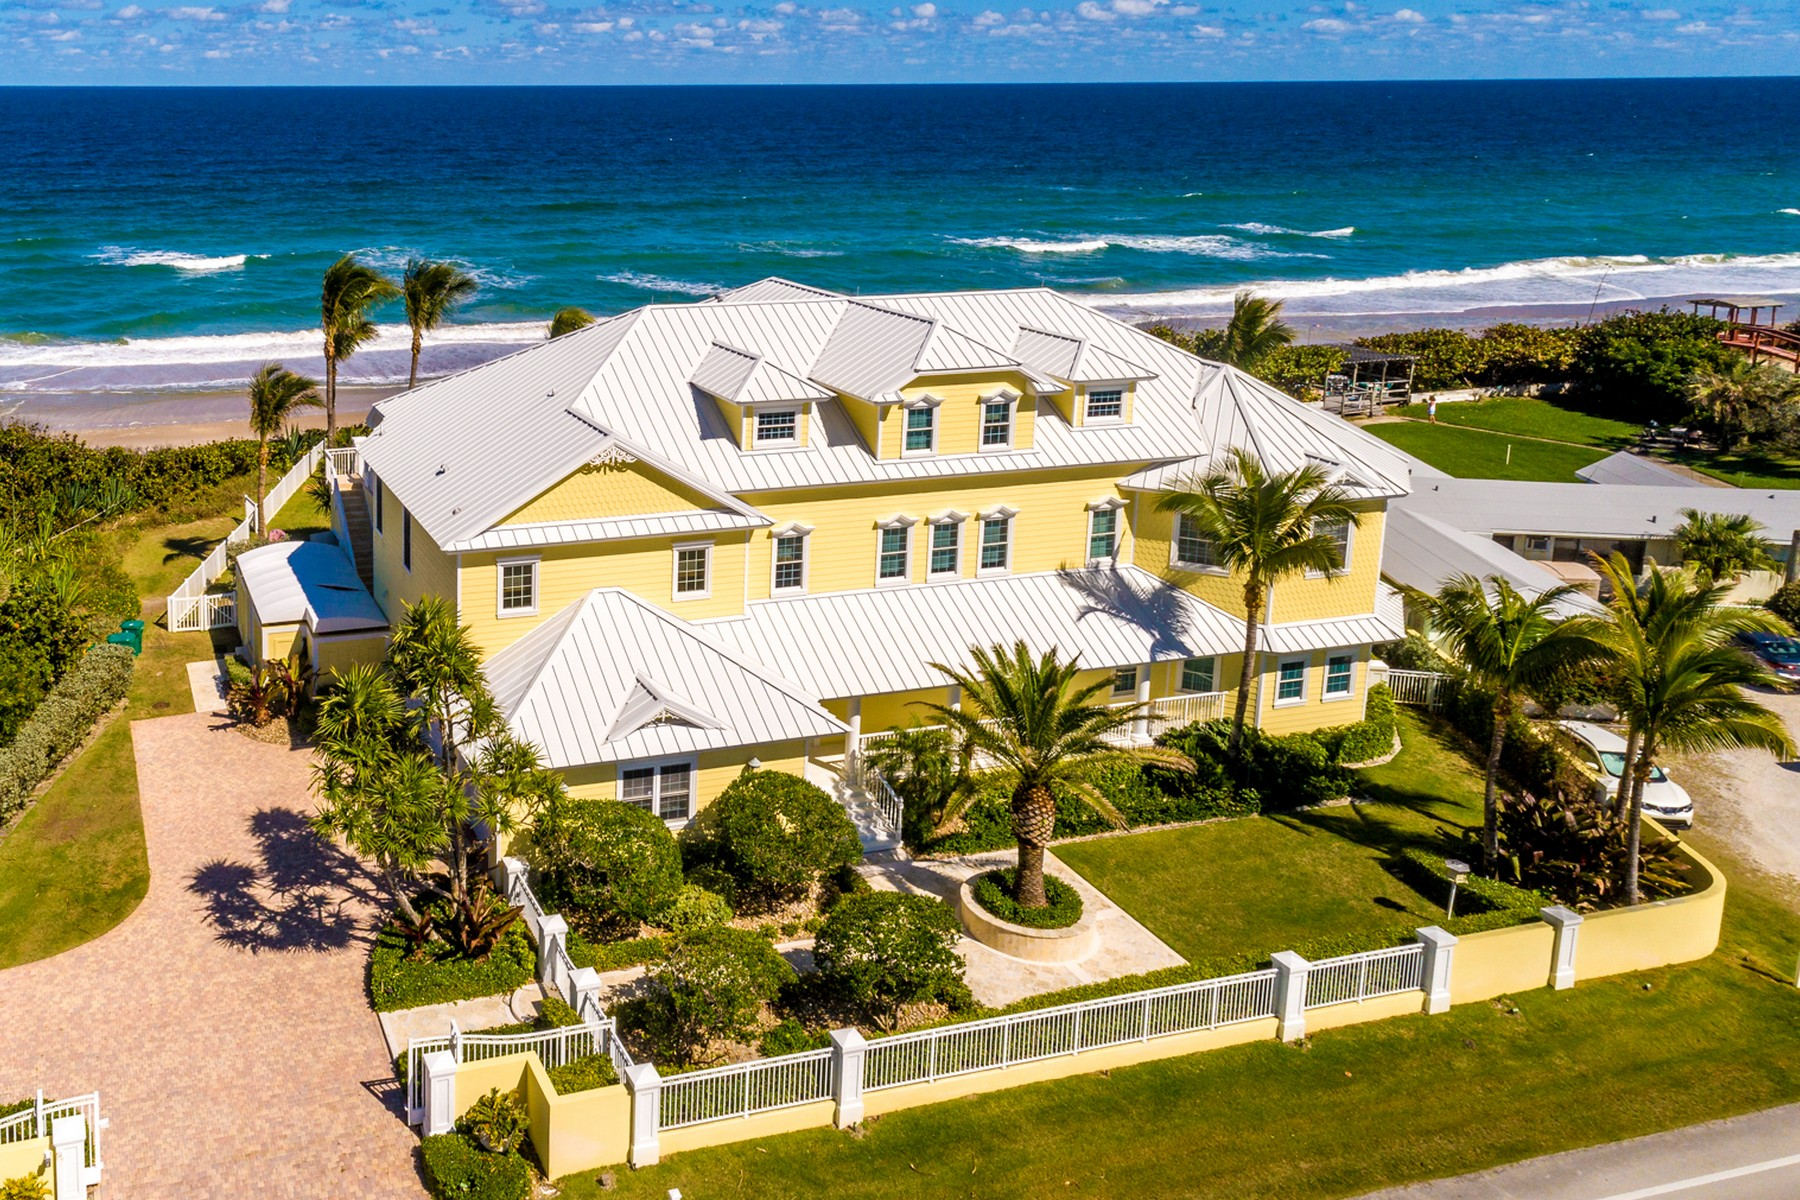 Property для того Продажа на Gorgeous Tropically Landscaped Home with Endless Ocean Vistas 5045 S Highway A1A Melbourne Beach, Флорида 32951 Соединенные Штаты